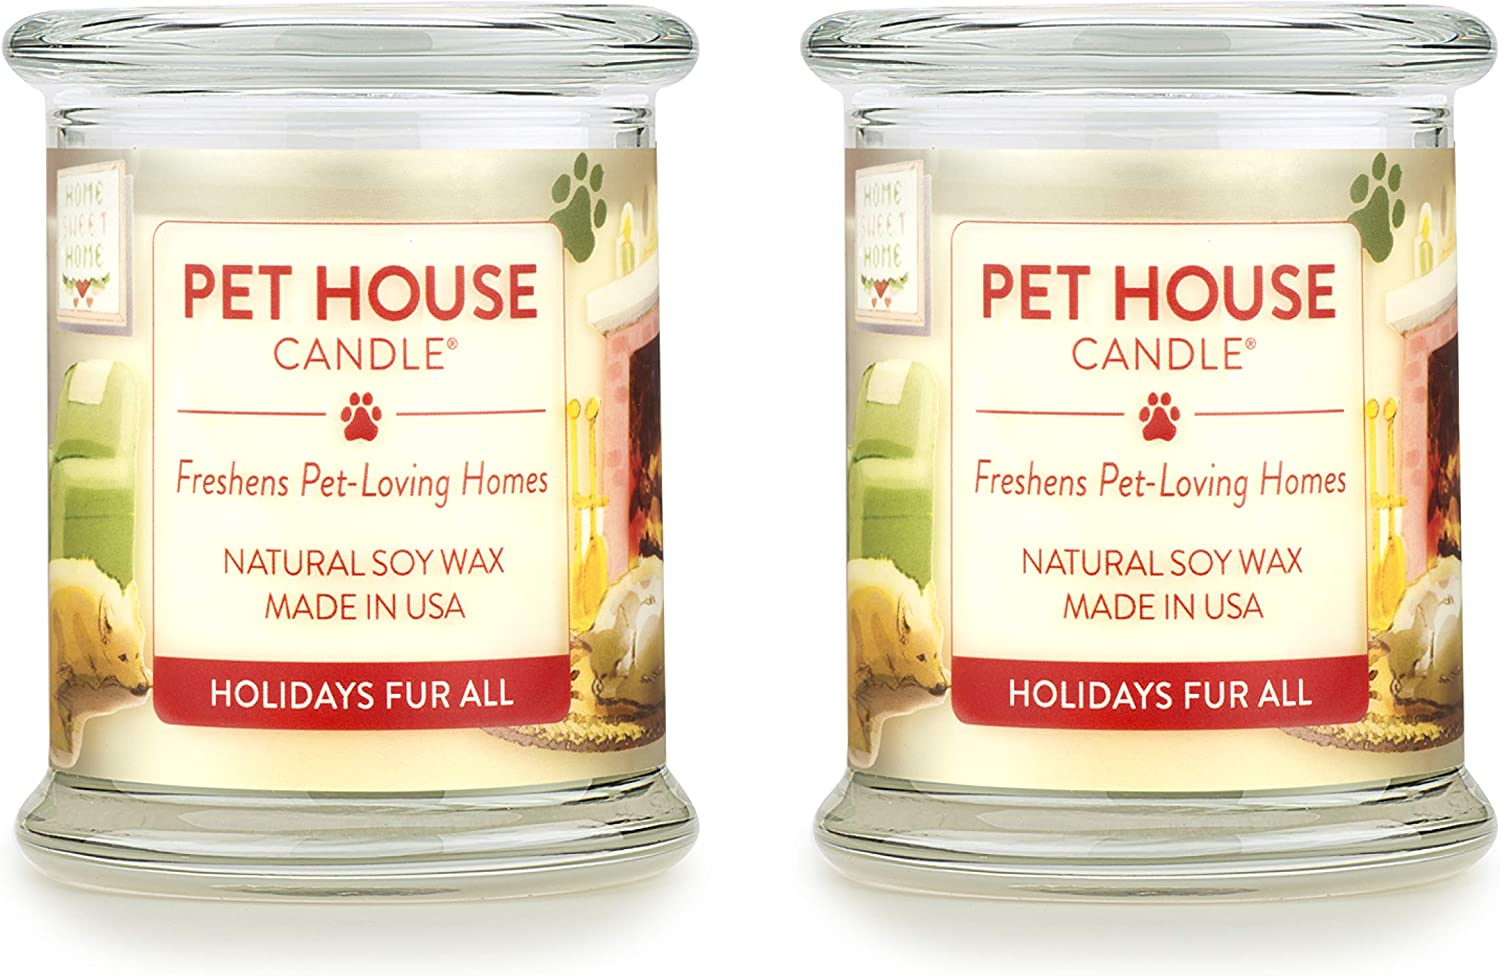 One Fur All 100% Natural Soy Wax Candle, 20 Fragrances - Pet Odor Eliminator, Up to 60 Hours Burn Time, Non-Toxic, Eco-Friendly Reusable Glass Jar Scented Candles – Holidays Fur All - Pack of 2